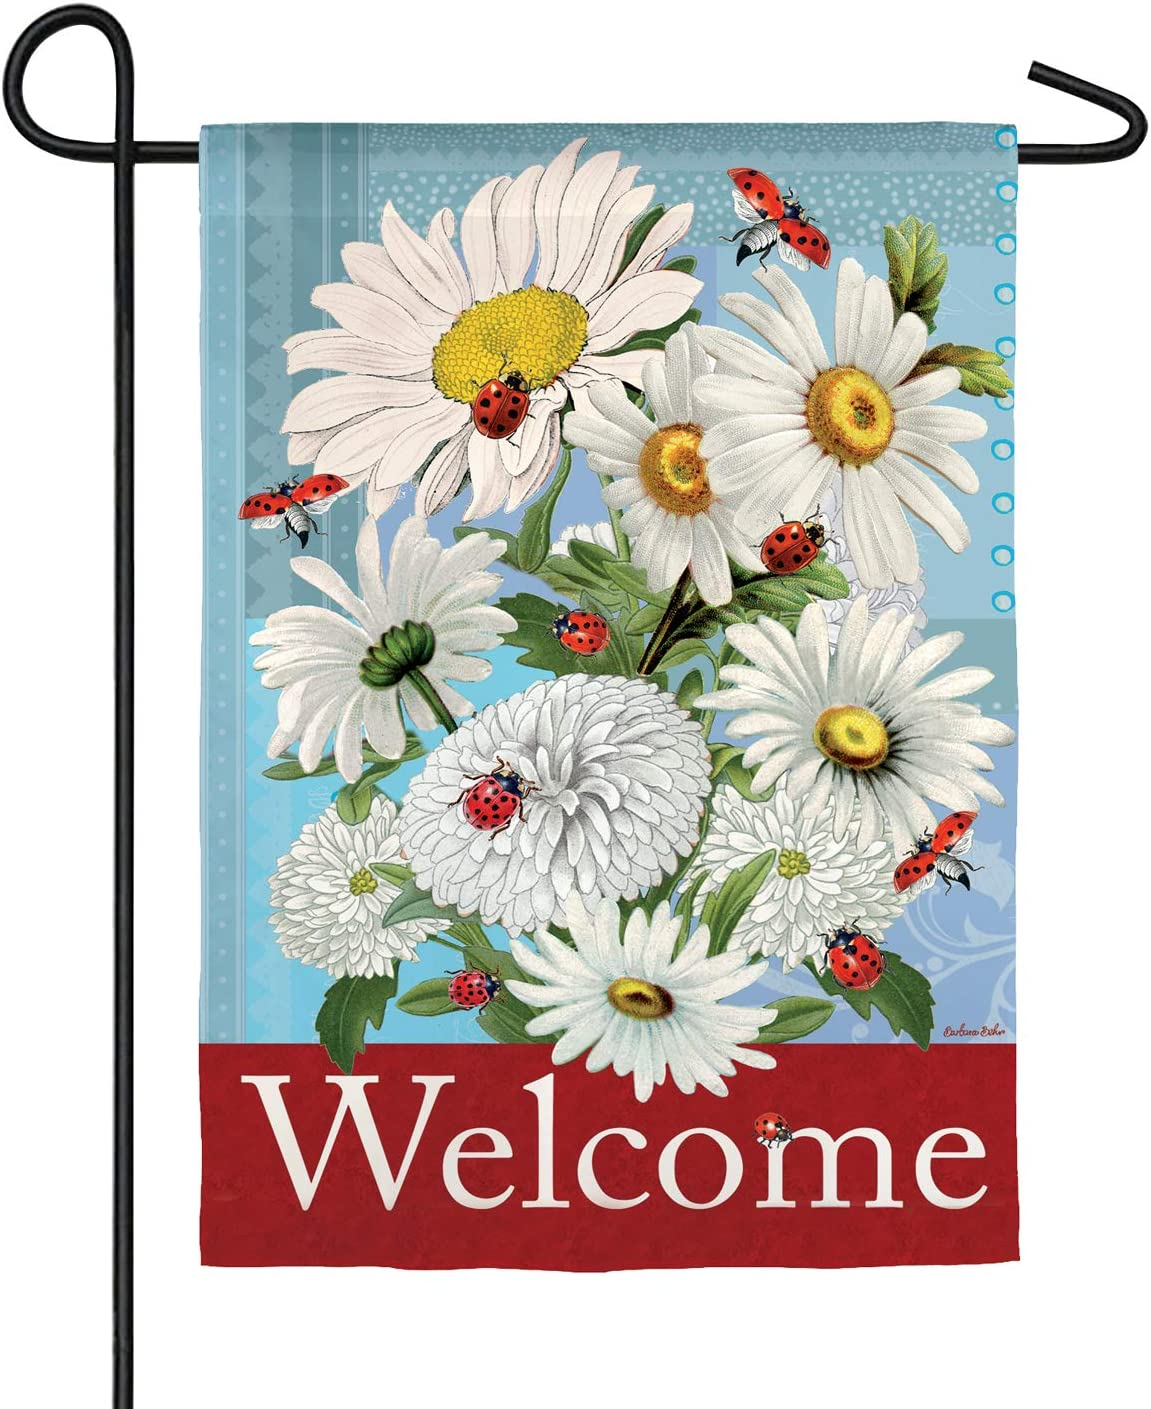 Evergreen Flag Beautiful Daisies and Ladybugs Double Sided Suede Garden Flag - 13 x 18 Inches Fade and Weather Resistant Outdoor Flag for Homes, Yards and Gardens